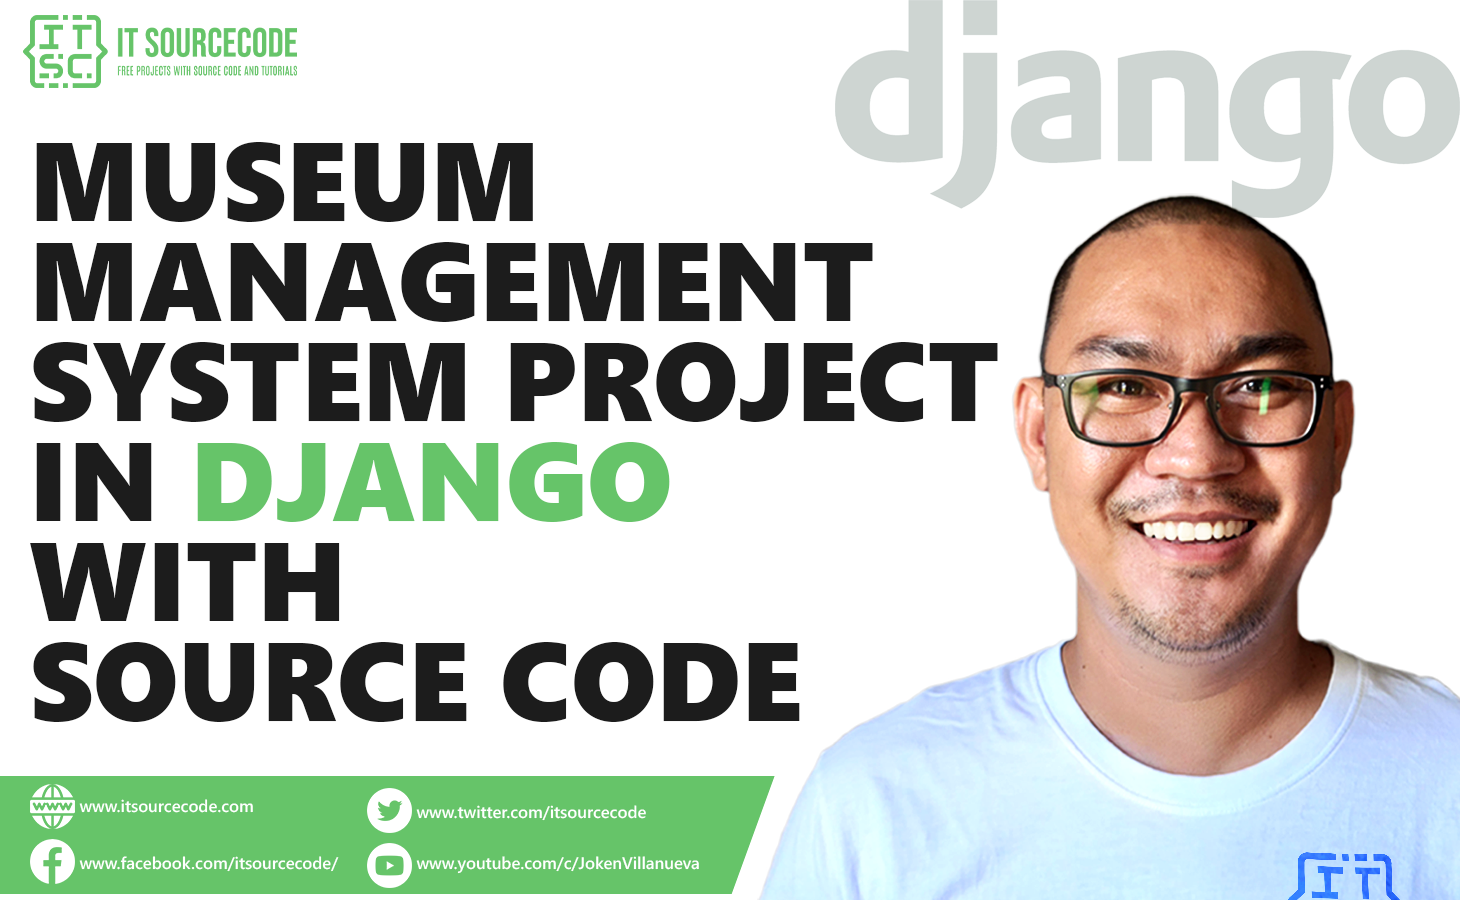 Museum Management System Project in Django with Source Code